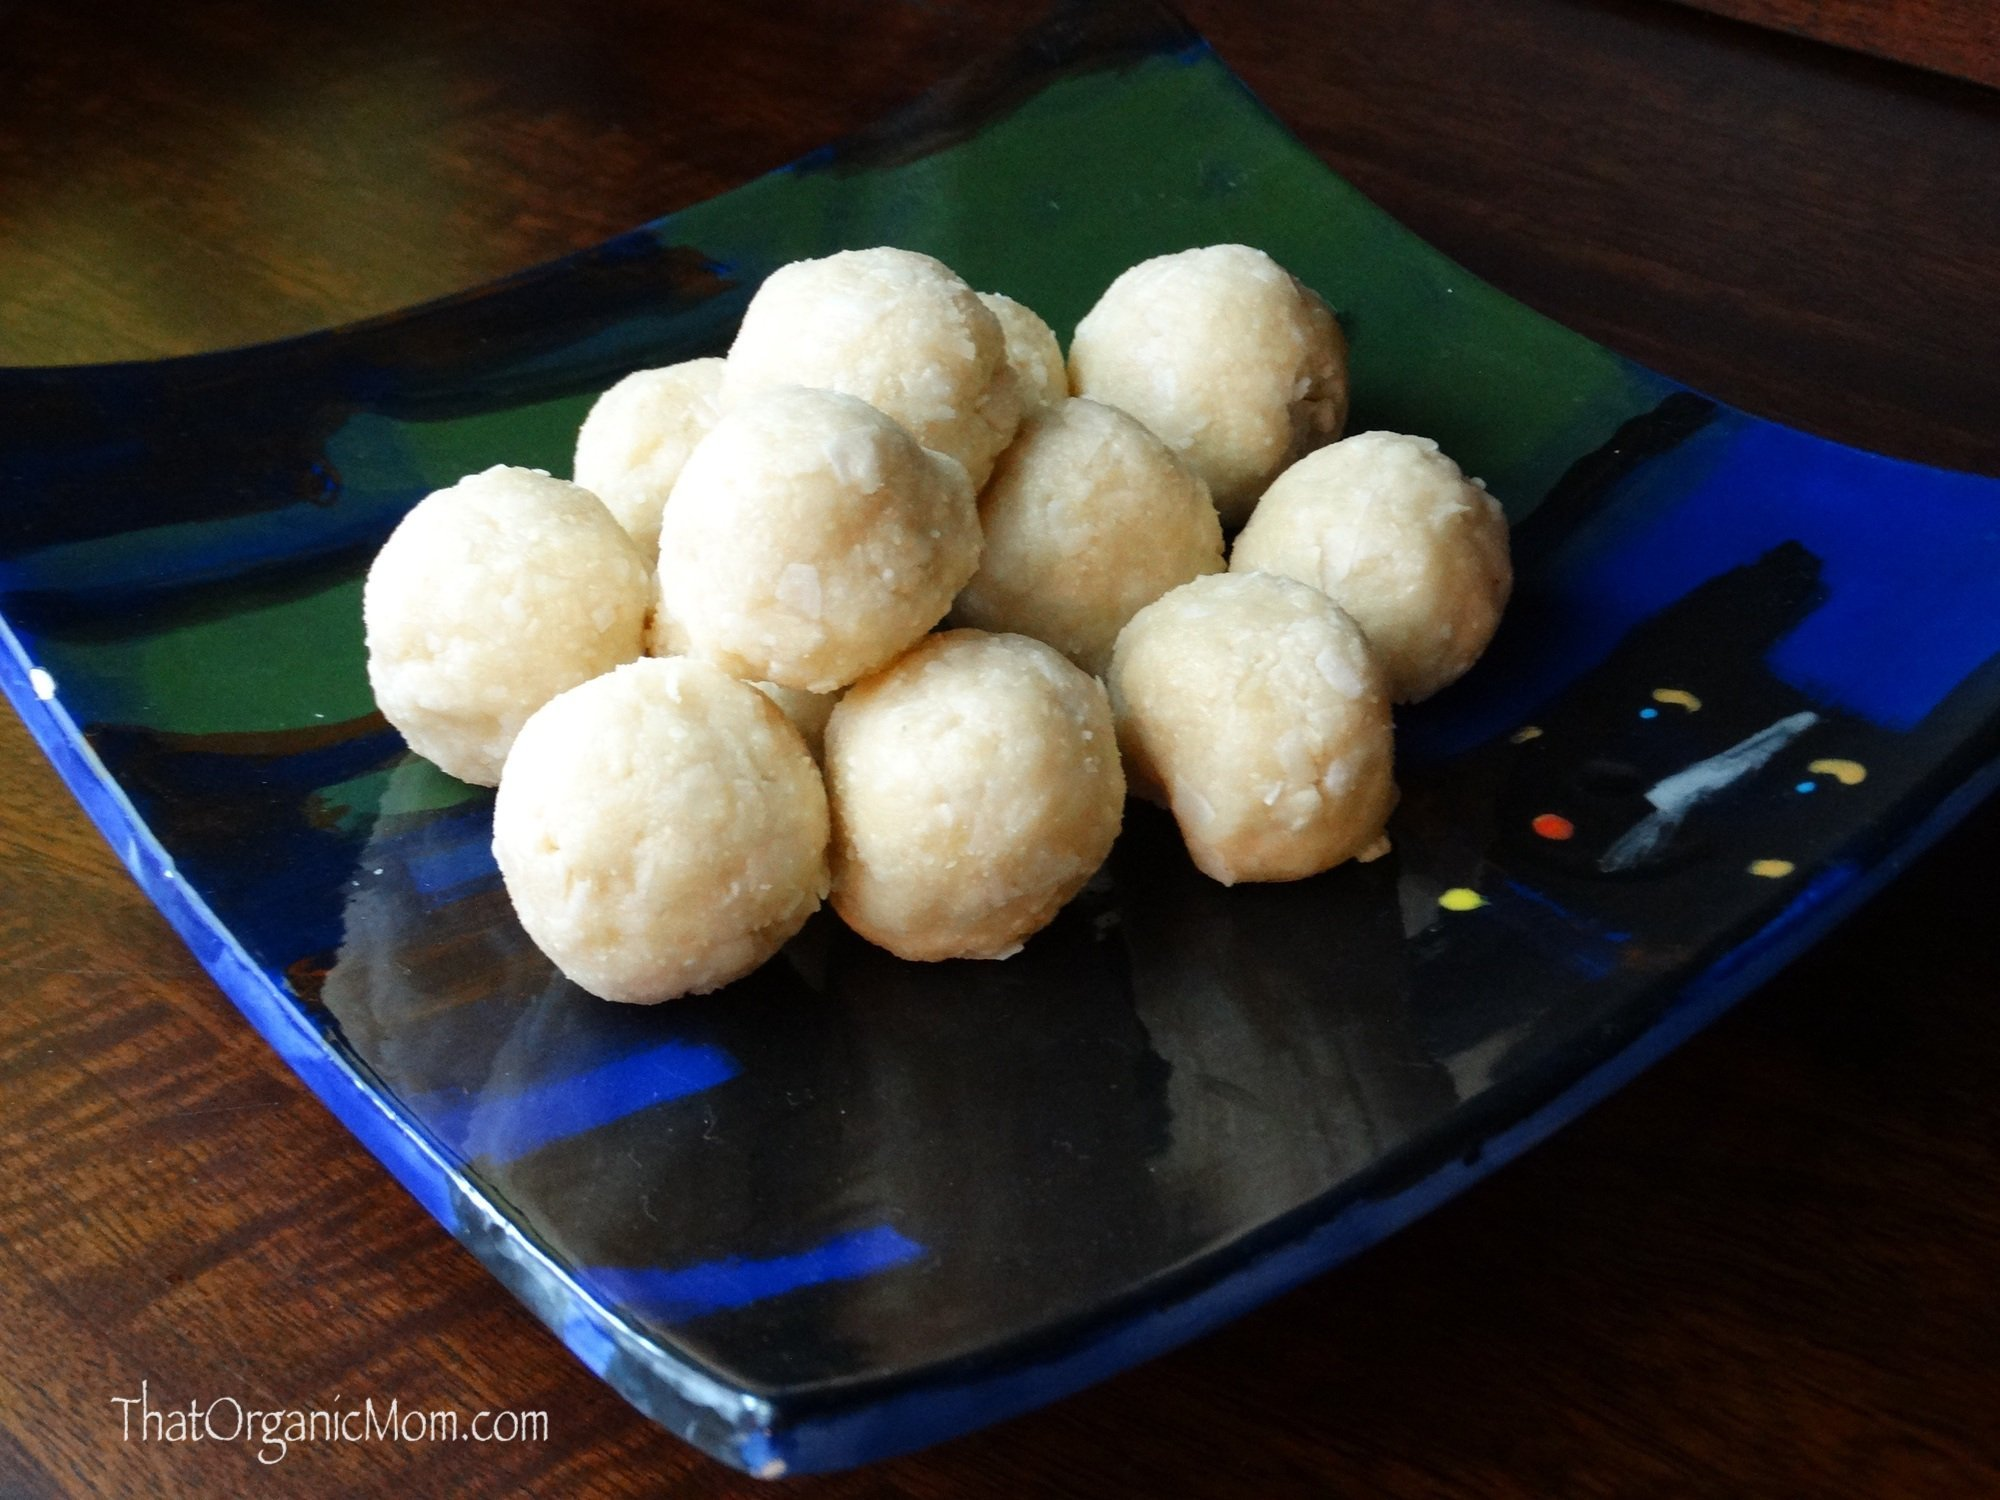 No Cook Coconut Macaroon Recipe - Low Carb, Sugar-Free and Gluten-Free 1